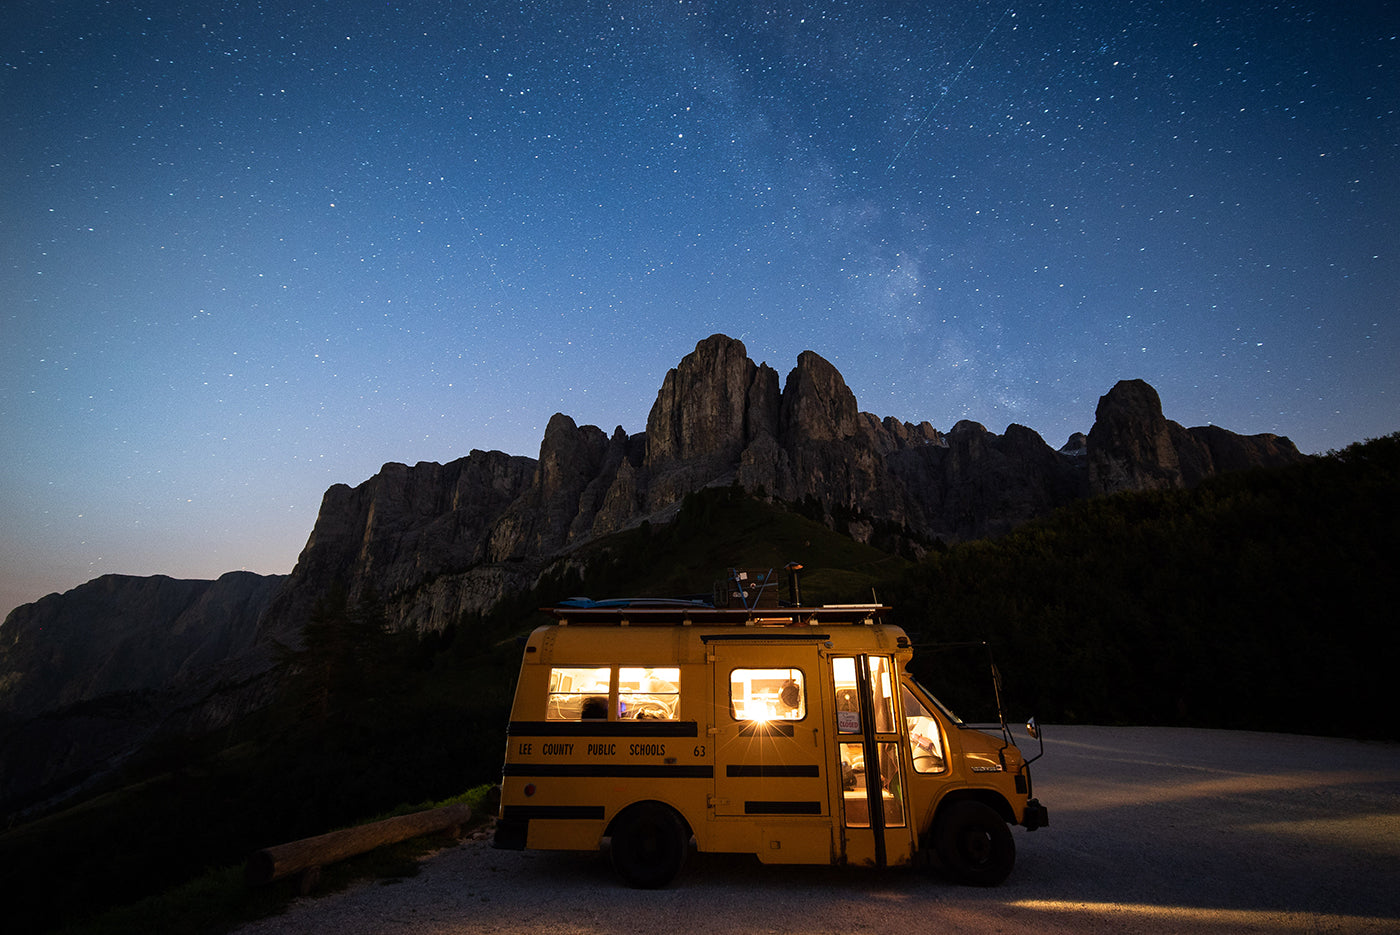 Lit school bus during night time. In the background a chain of mountains. (Photo: Kai Branss)